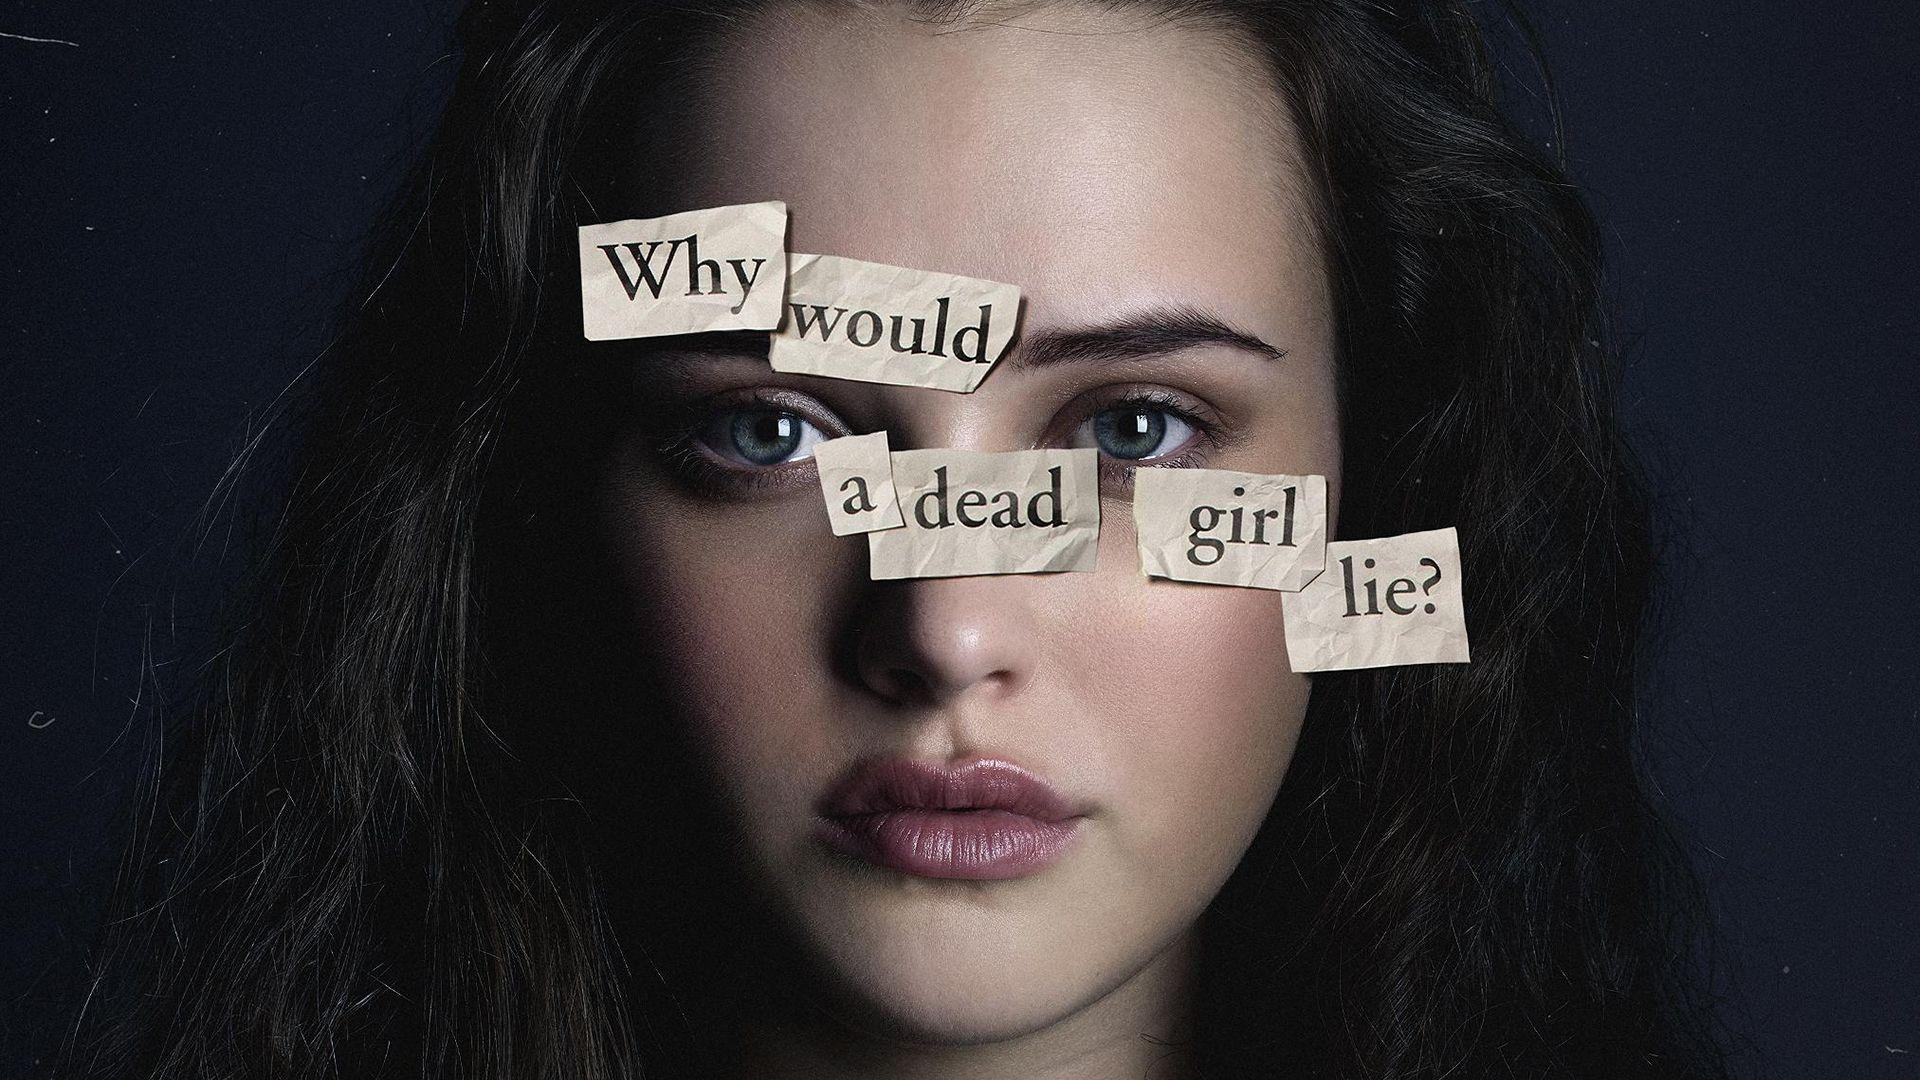 10 Most Popular 13 Reasons Why Wallpaper FULL HD 1080p For PC Background